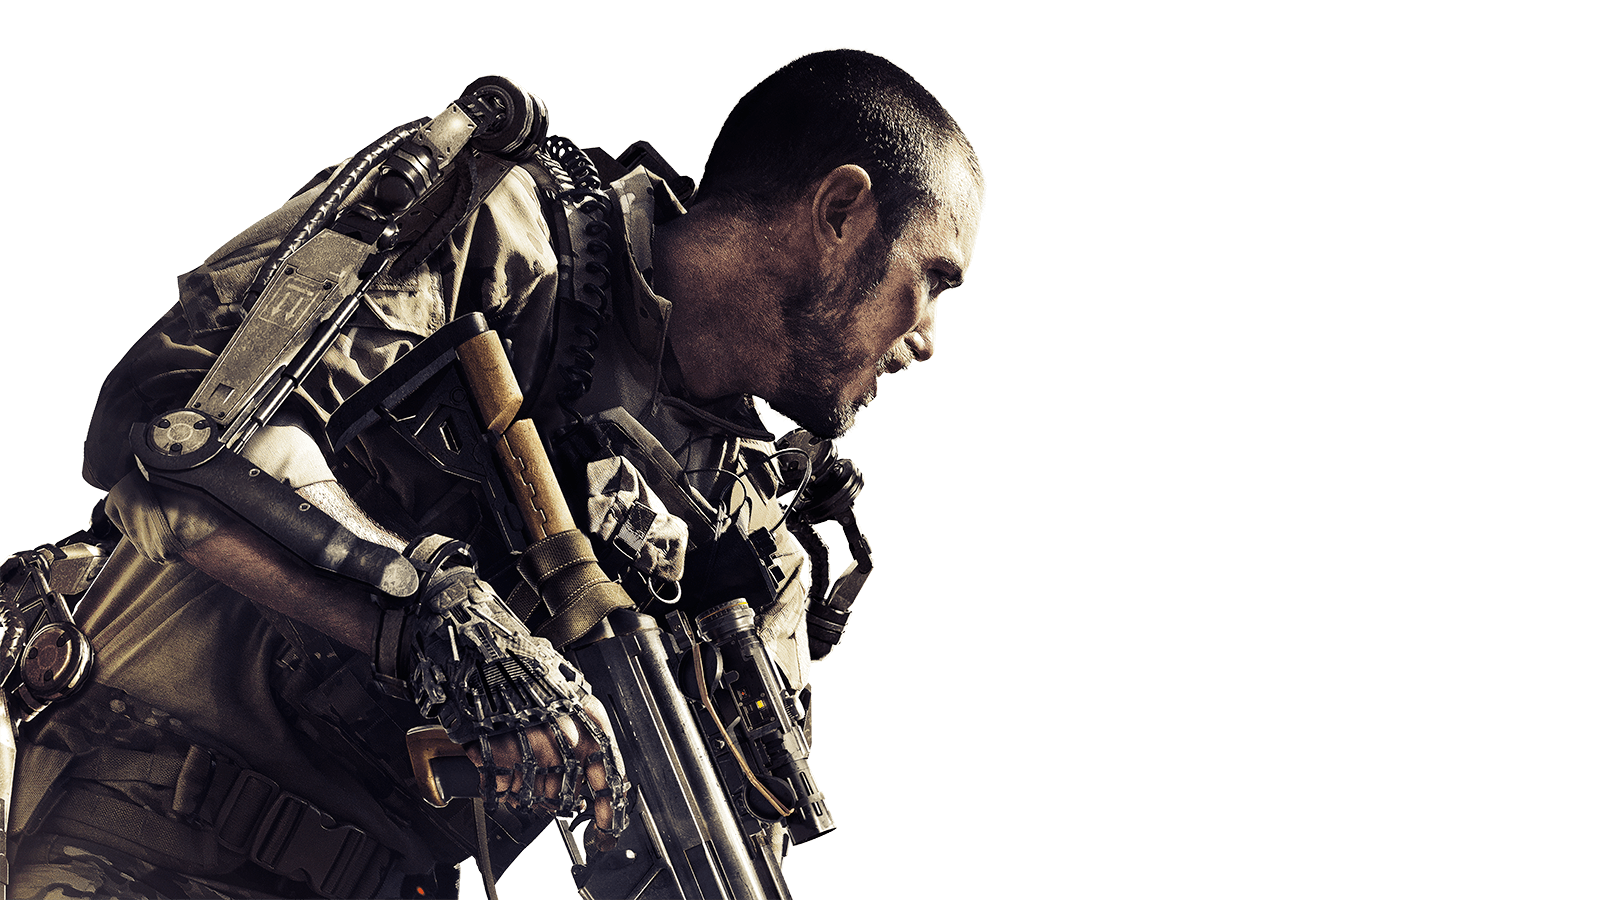 Call Of Duty Transparent # 1465725